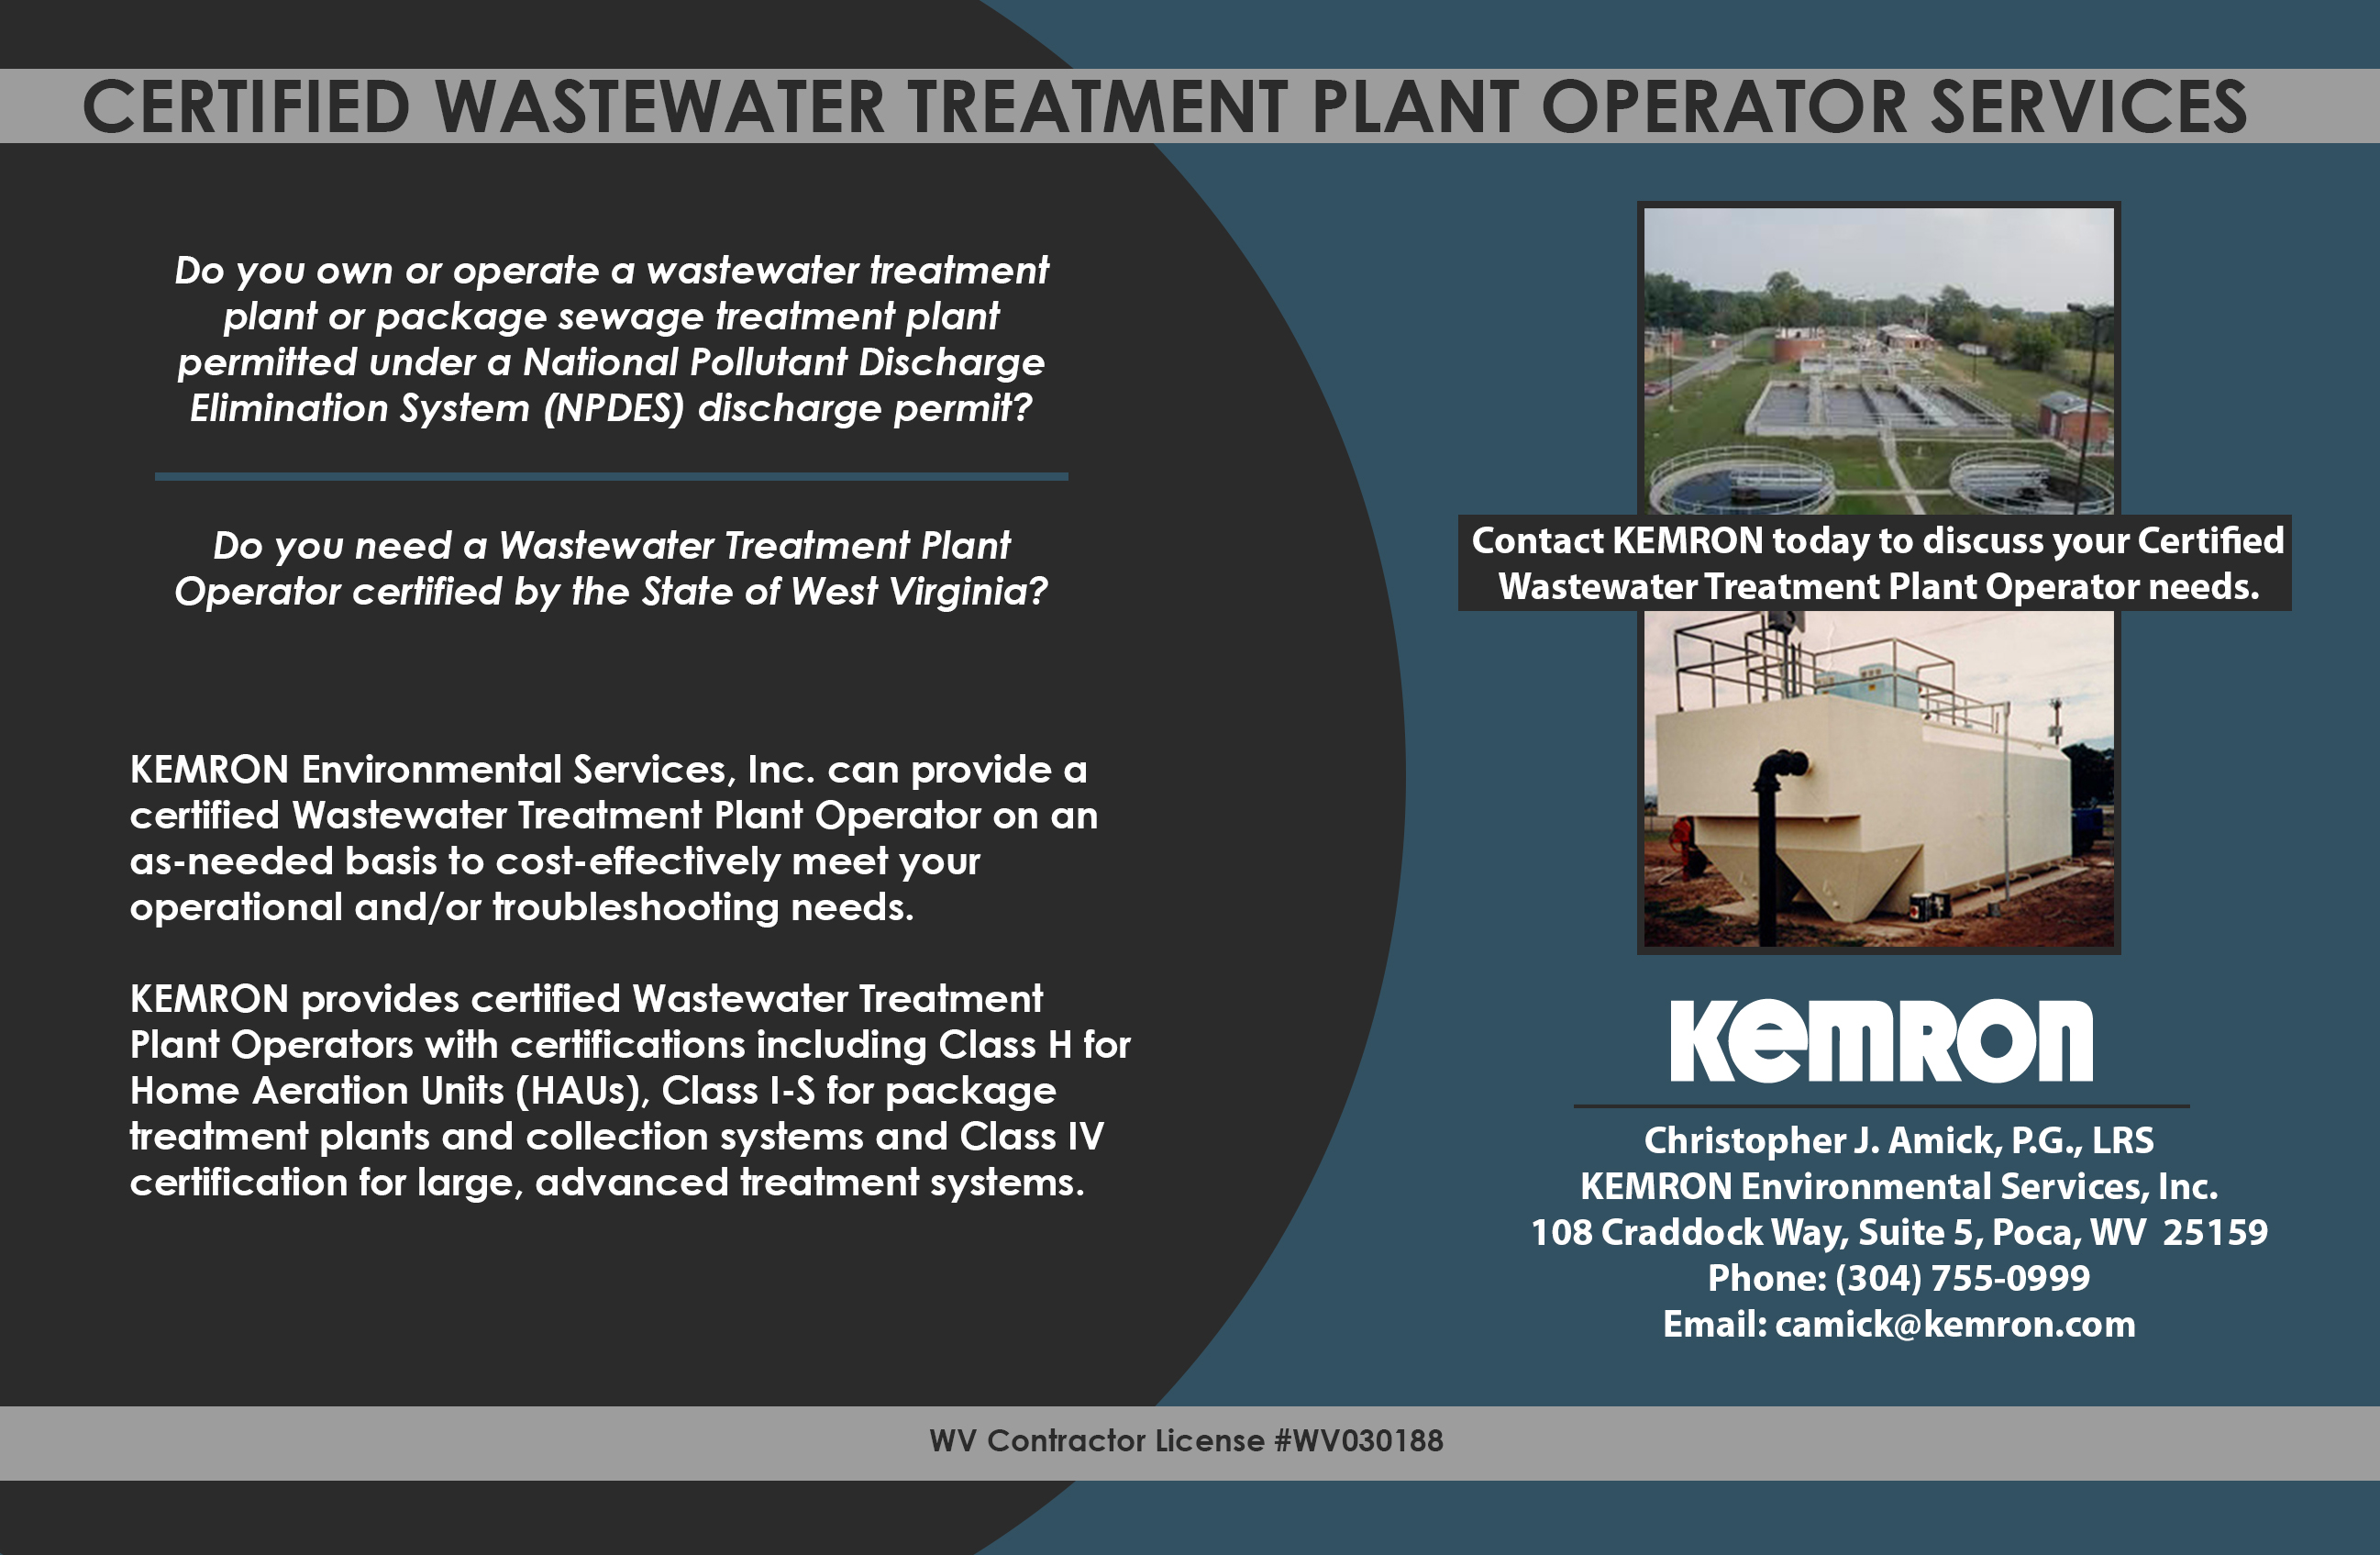 Wastewater Treatment Plant Operator Services Kemron Environmental